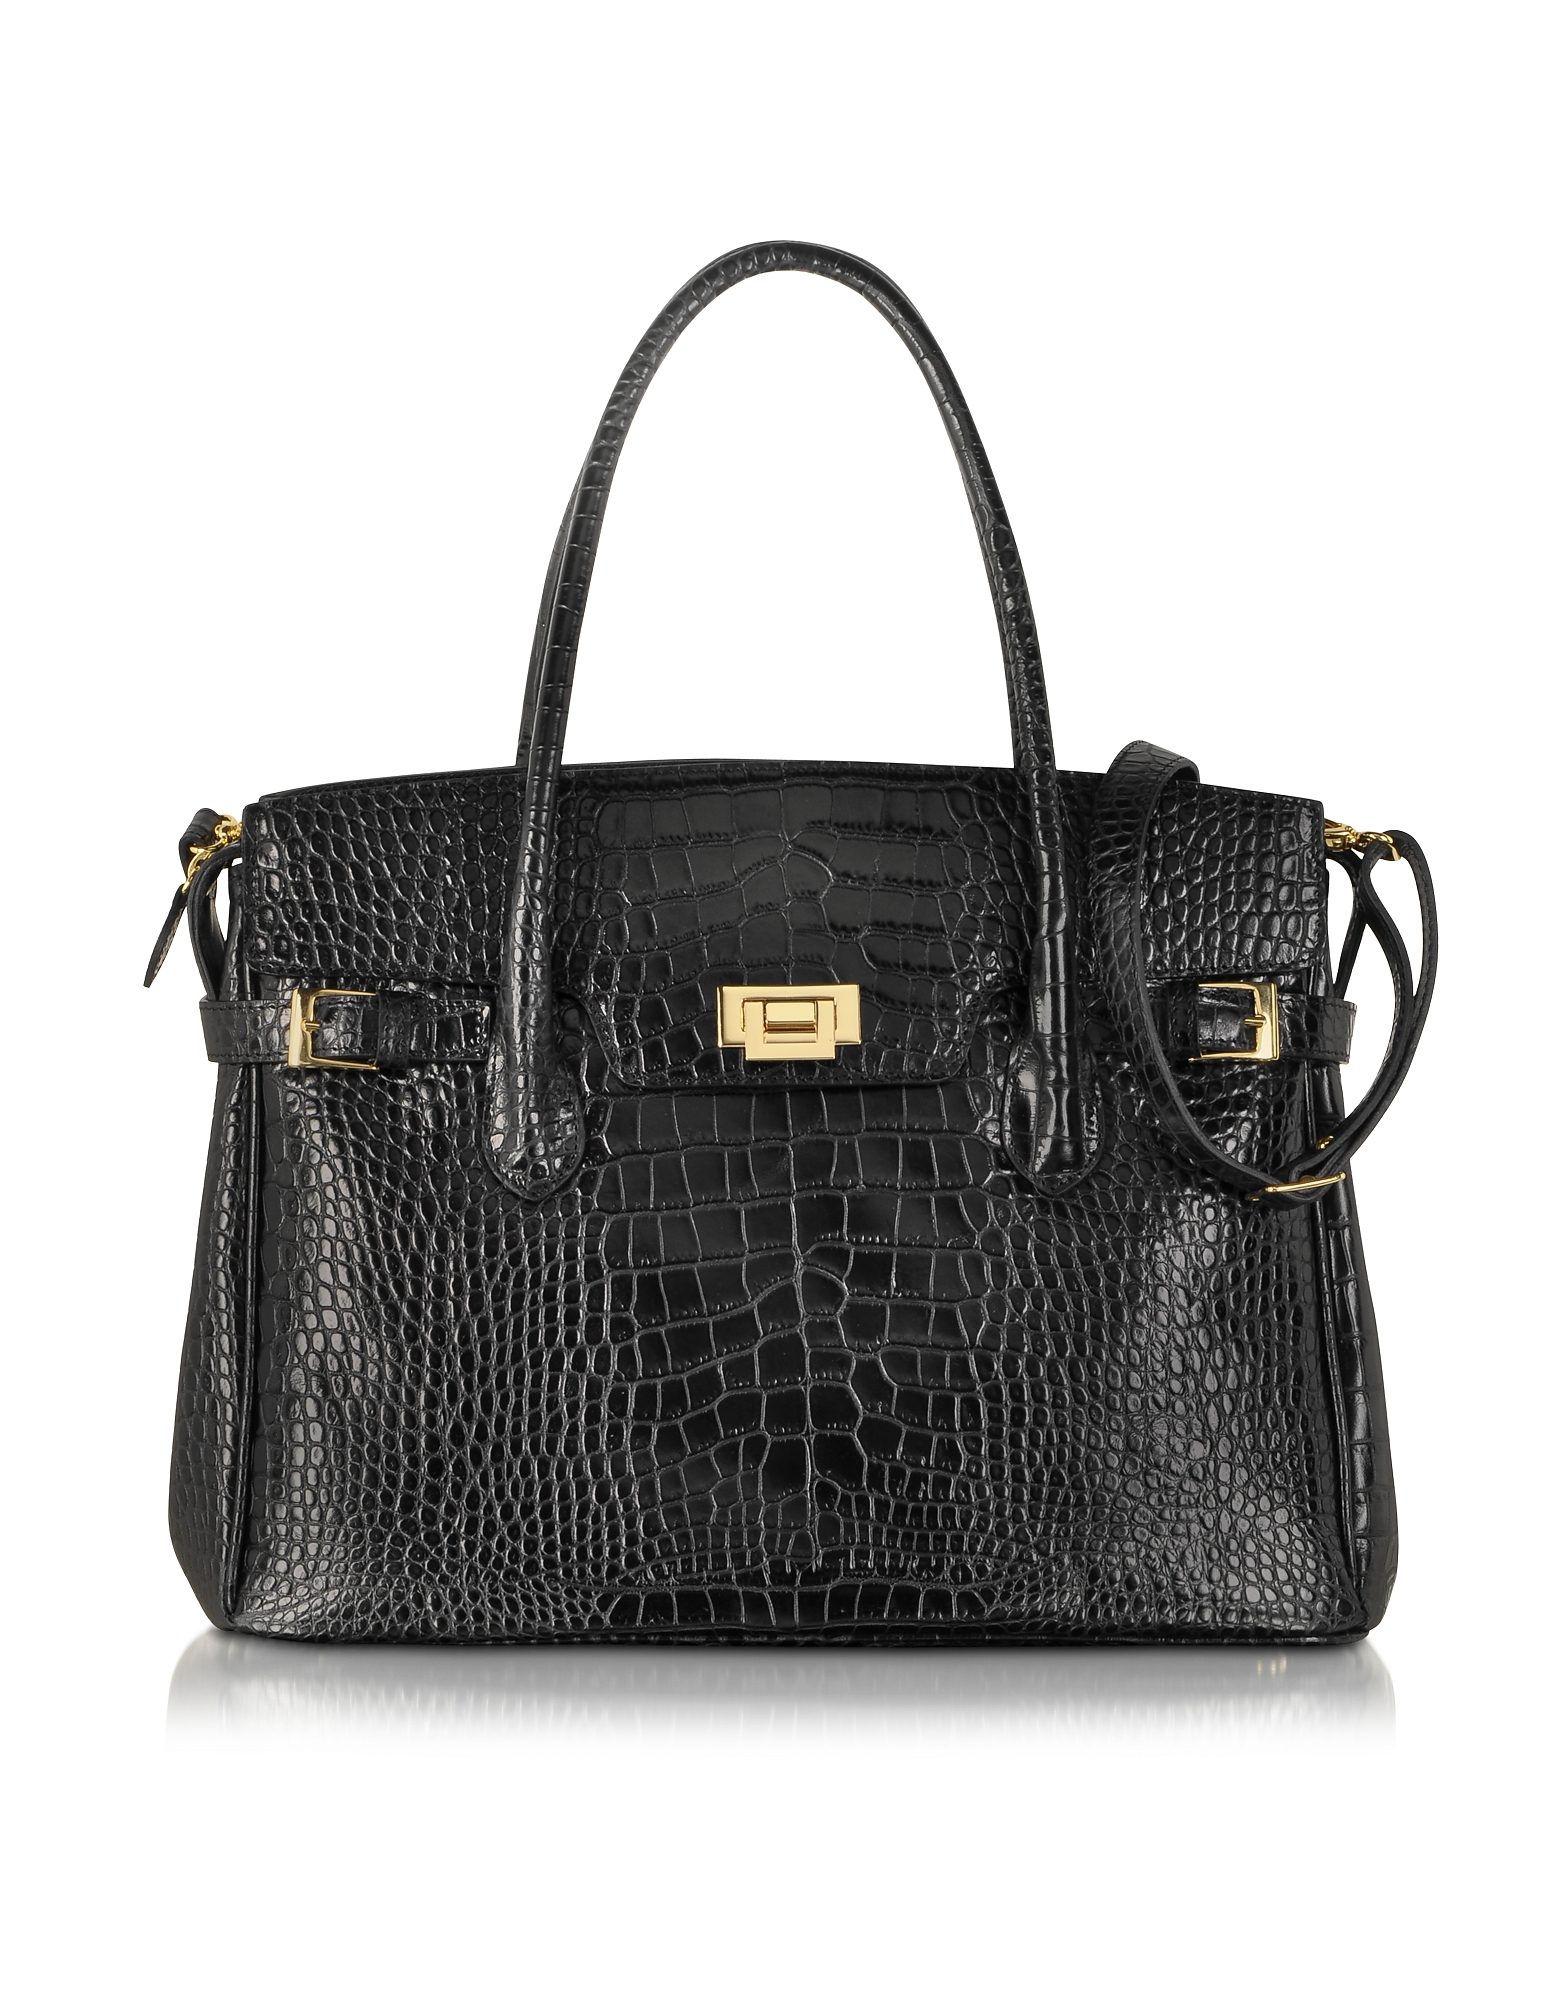 Fontanelli Handbags, Shiny Black Croco Embossed Leather Tote